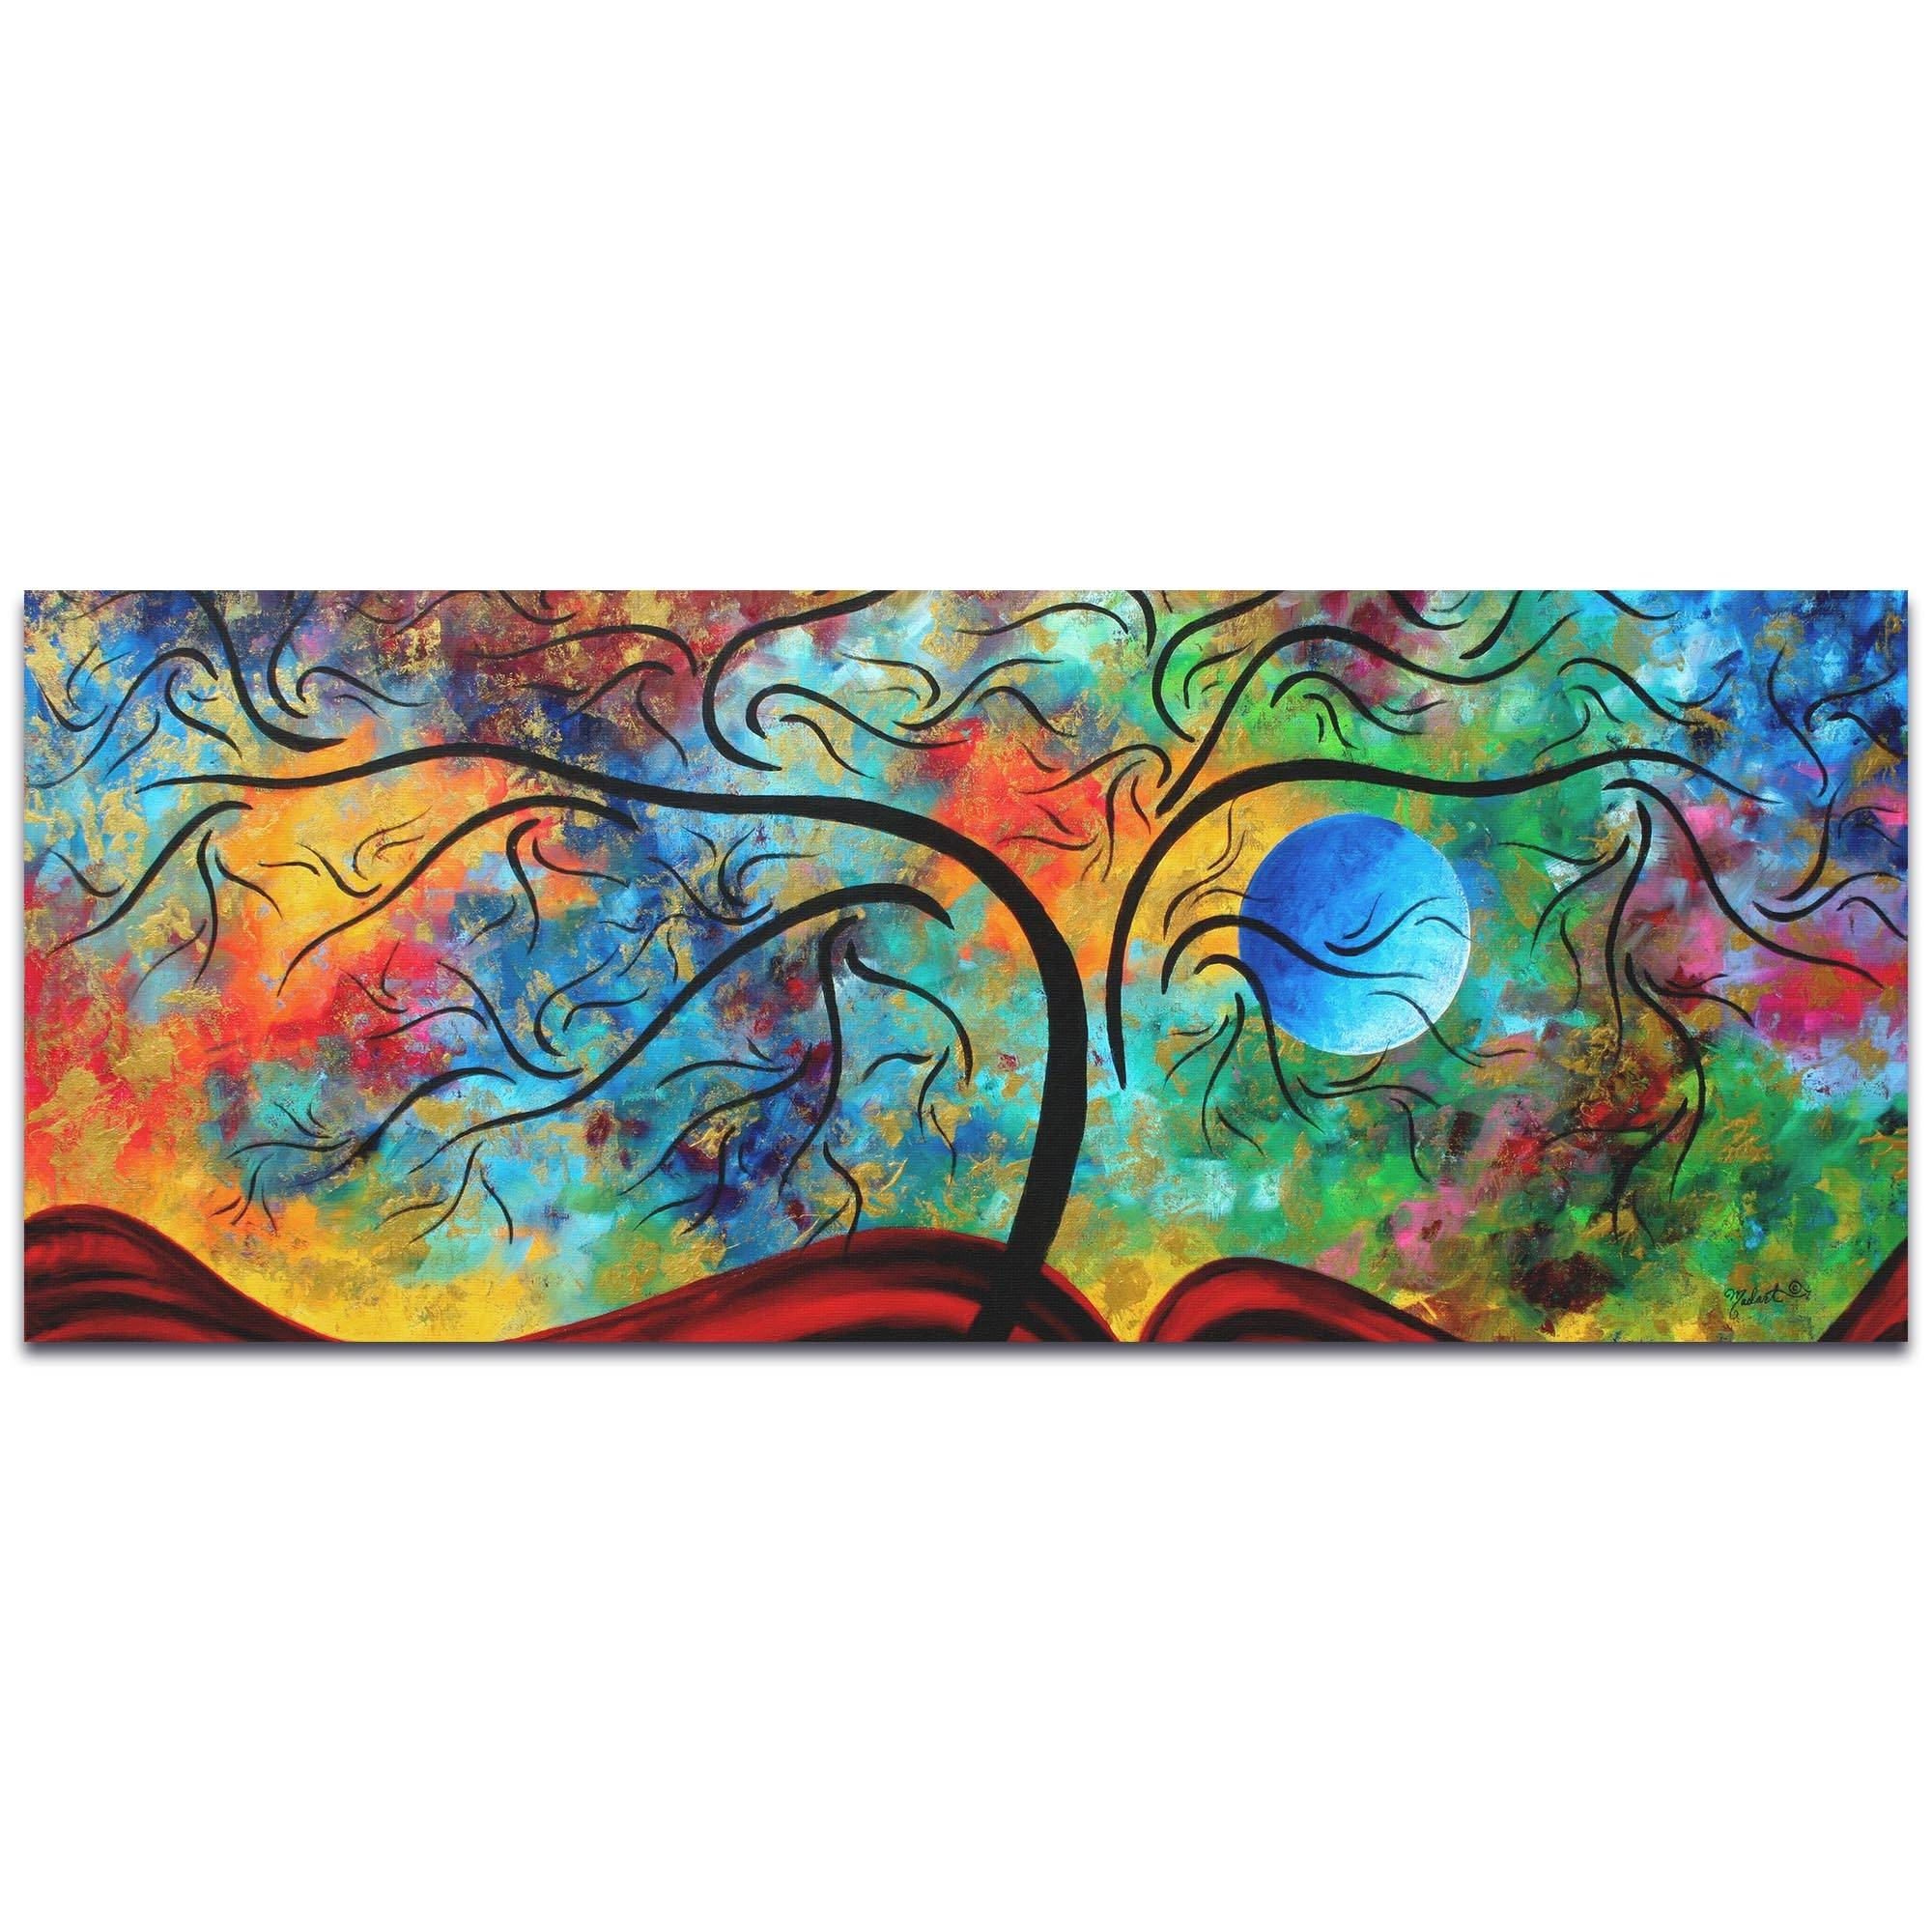 Metal Art Studio – Blue Moon Risingmegan Duncanson – Landscape Intended For Most Up To Date Megan Duncanson Metal Wall Art (View 11 of 25)